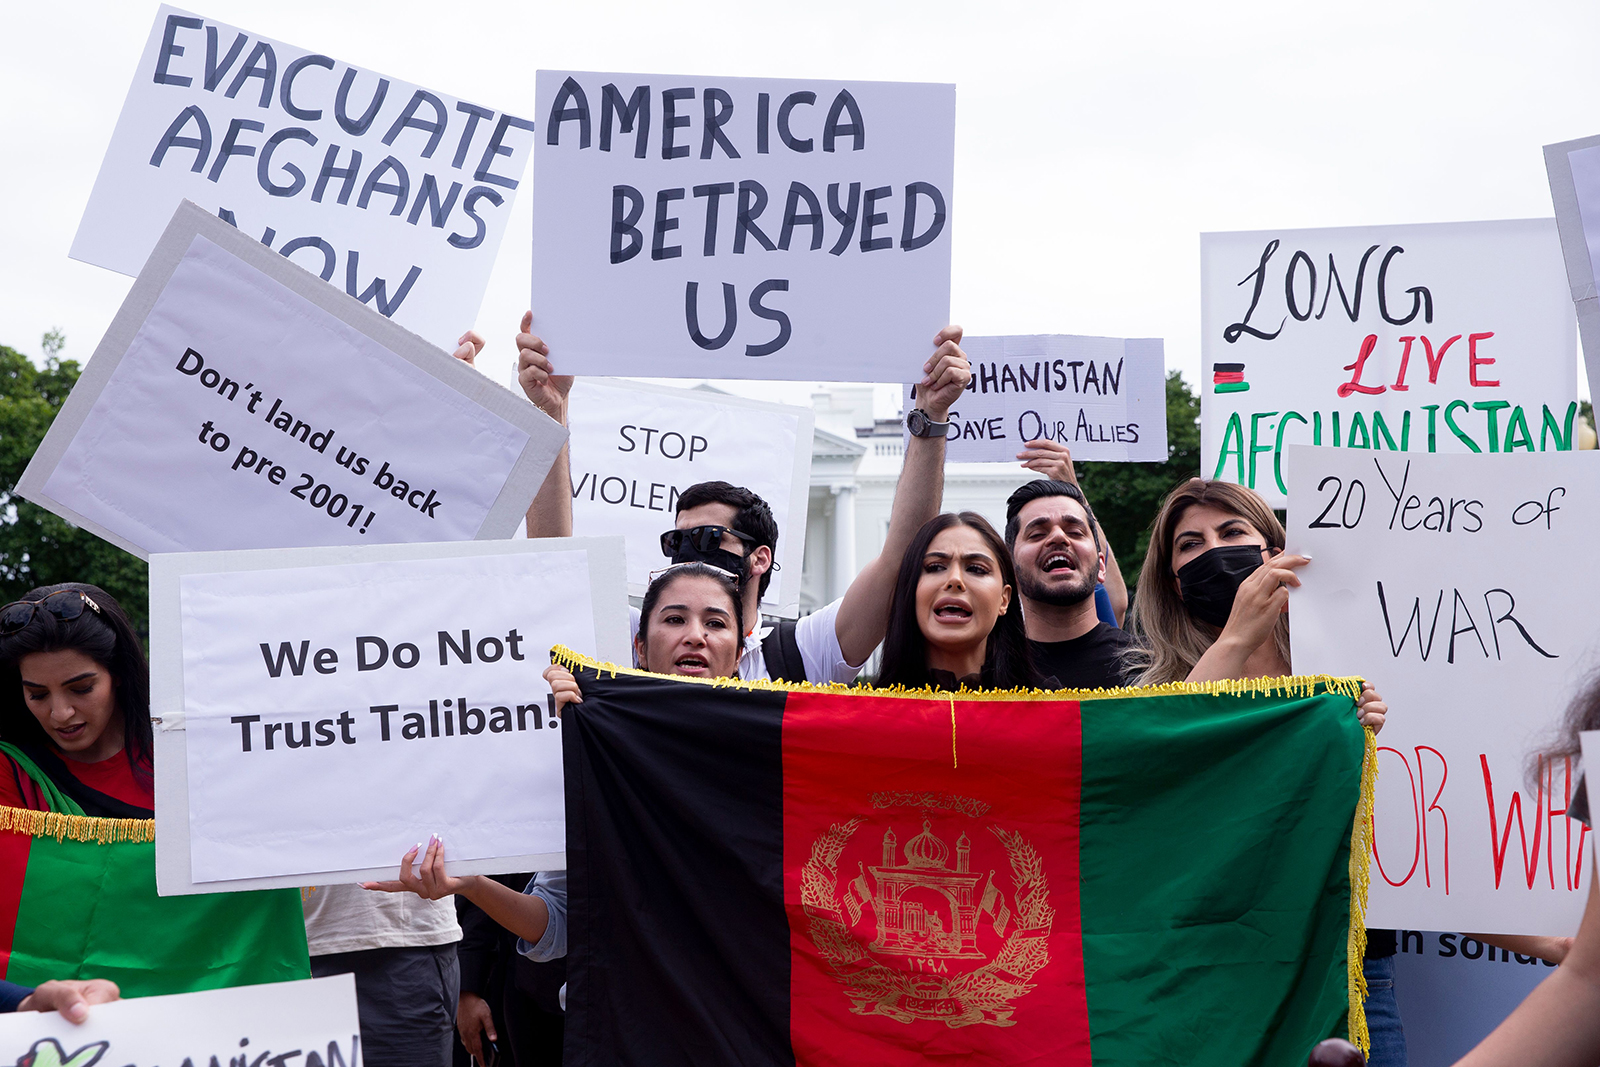 People protest in support of Afghanistan and against the Taliban take over of the country, at Lafayette Square across the street from the White House in Washington DC on August 15.